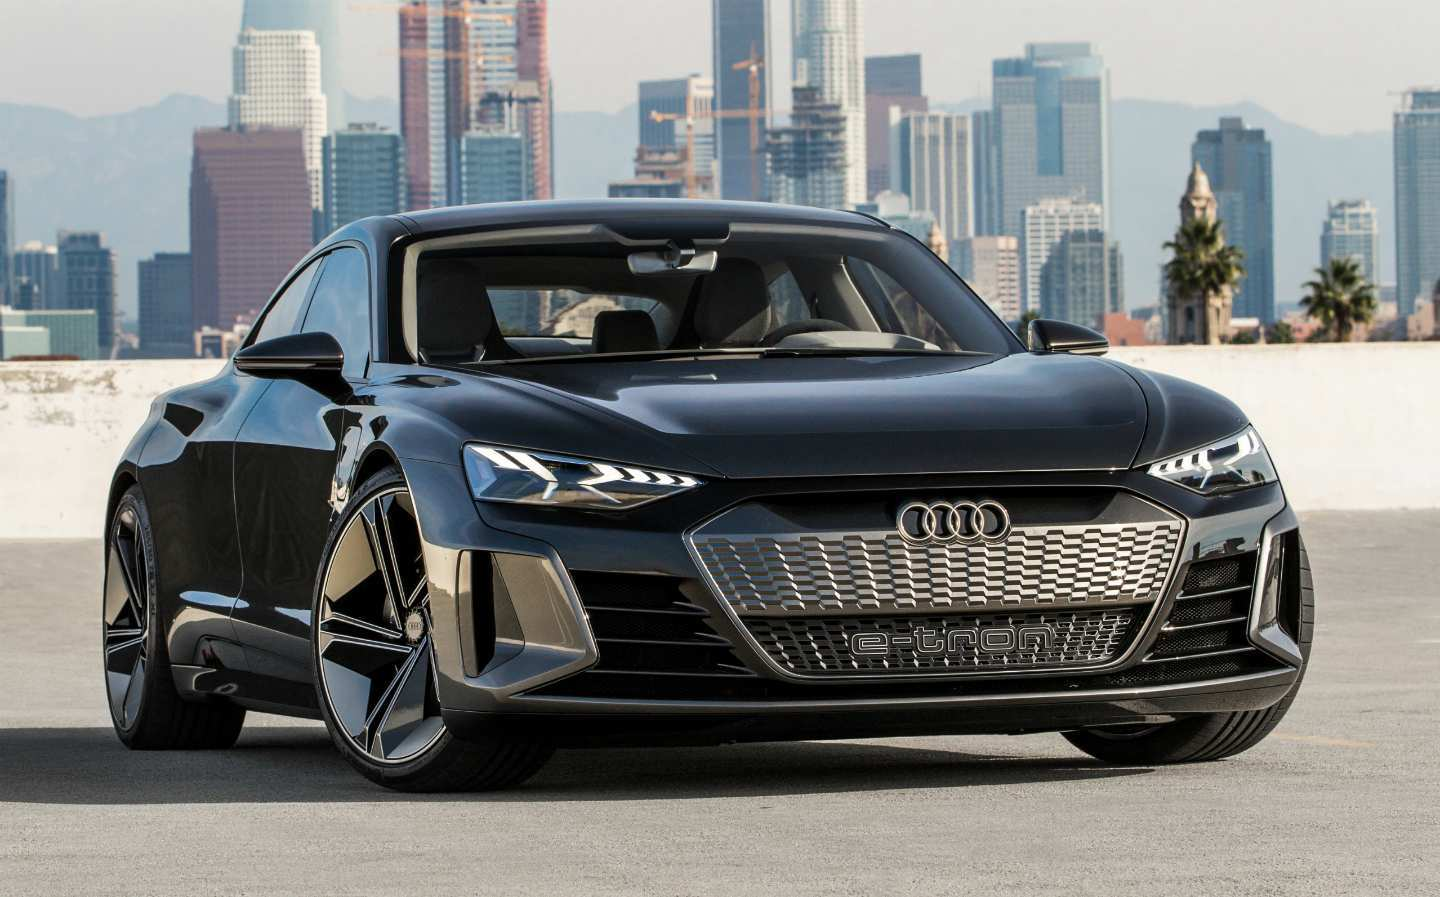 62 Gallery of Audi Hybrid Cars 2020 Rumors with Audi Hybrid Cars 2020